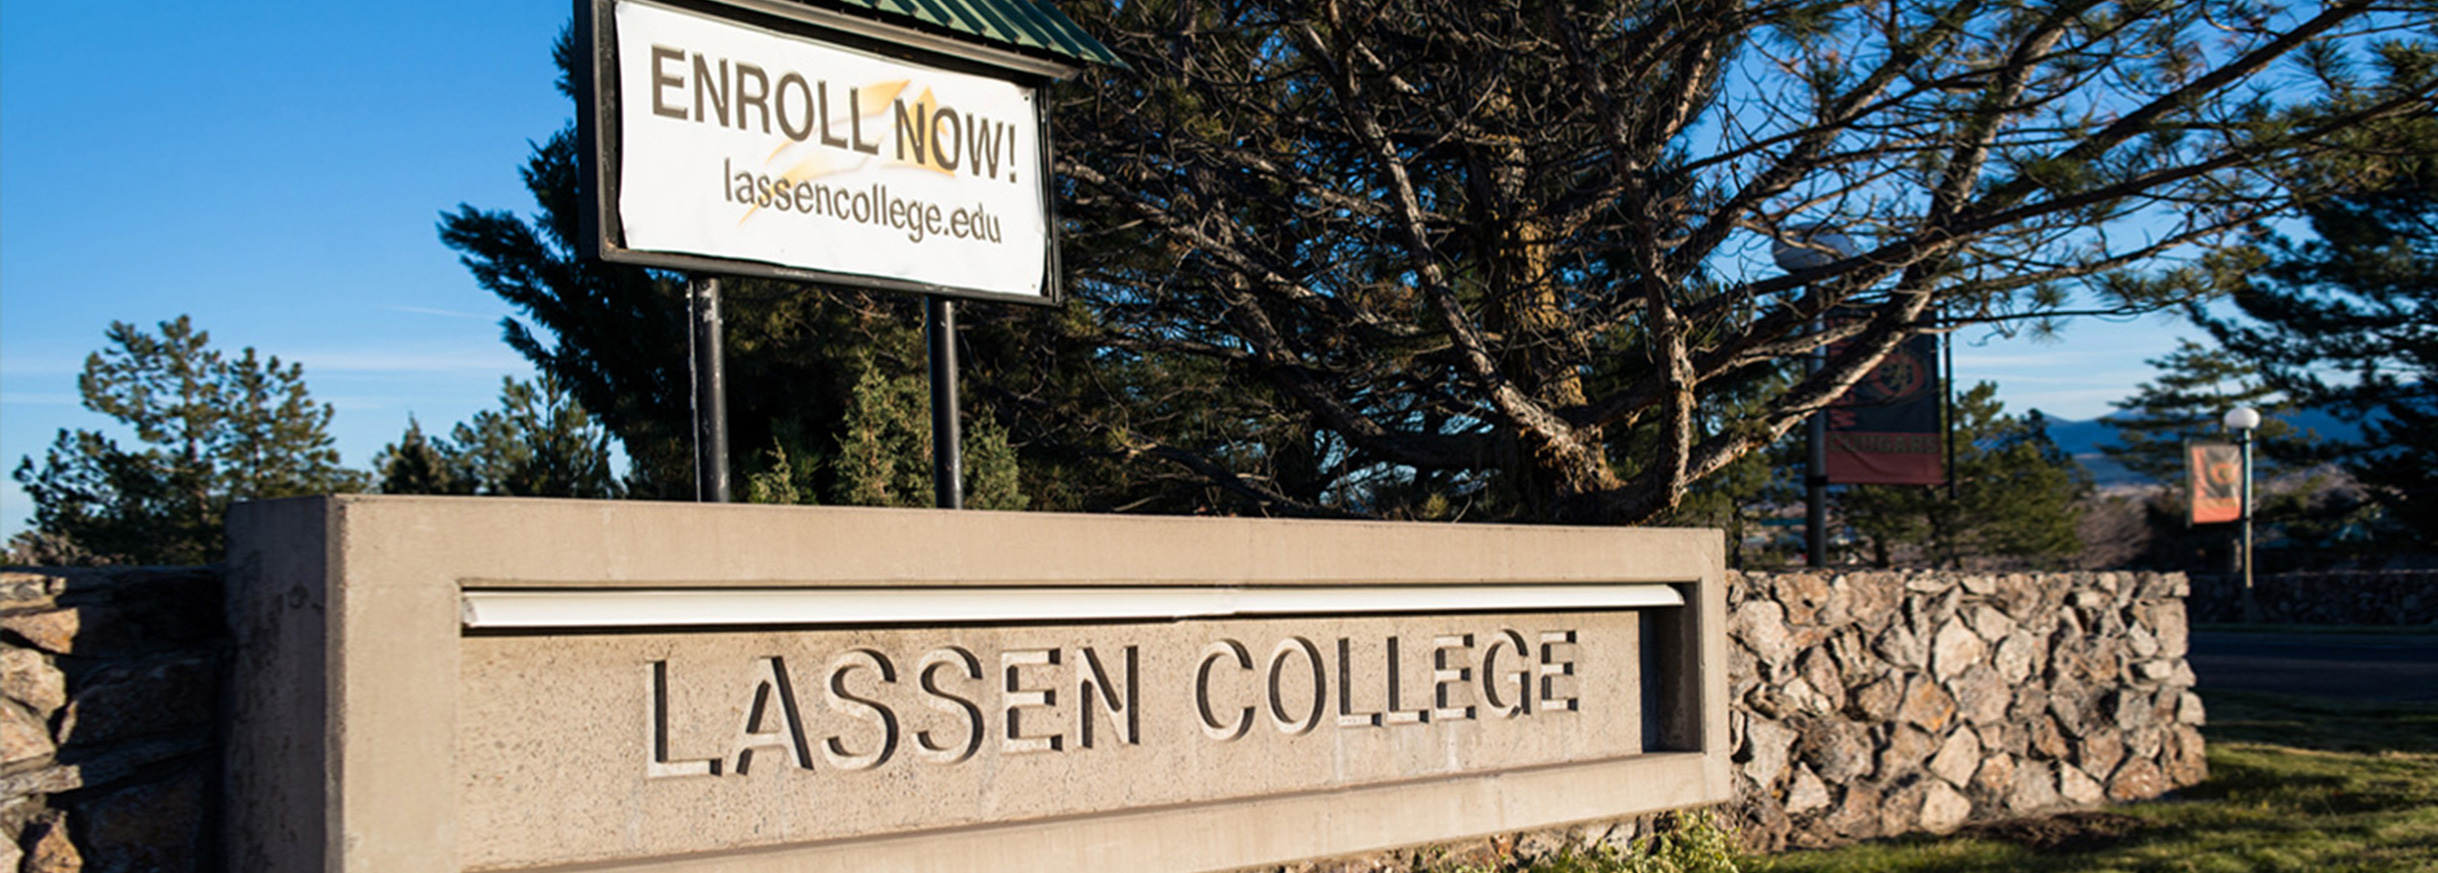 Lassen College campus entrance sign with Enroll Now billboard